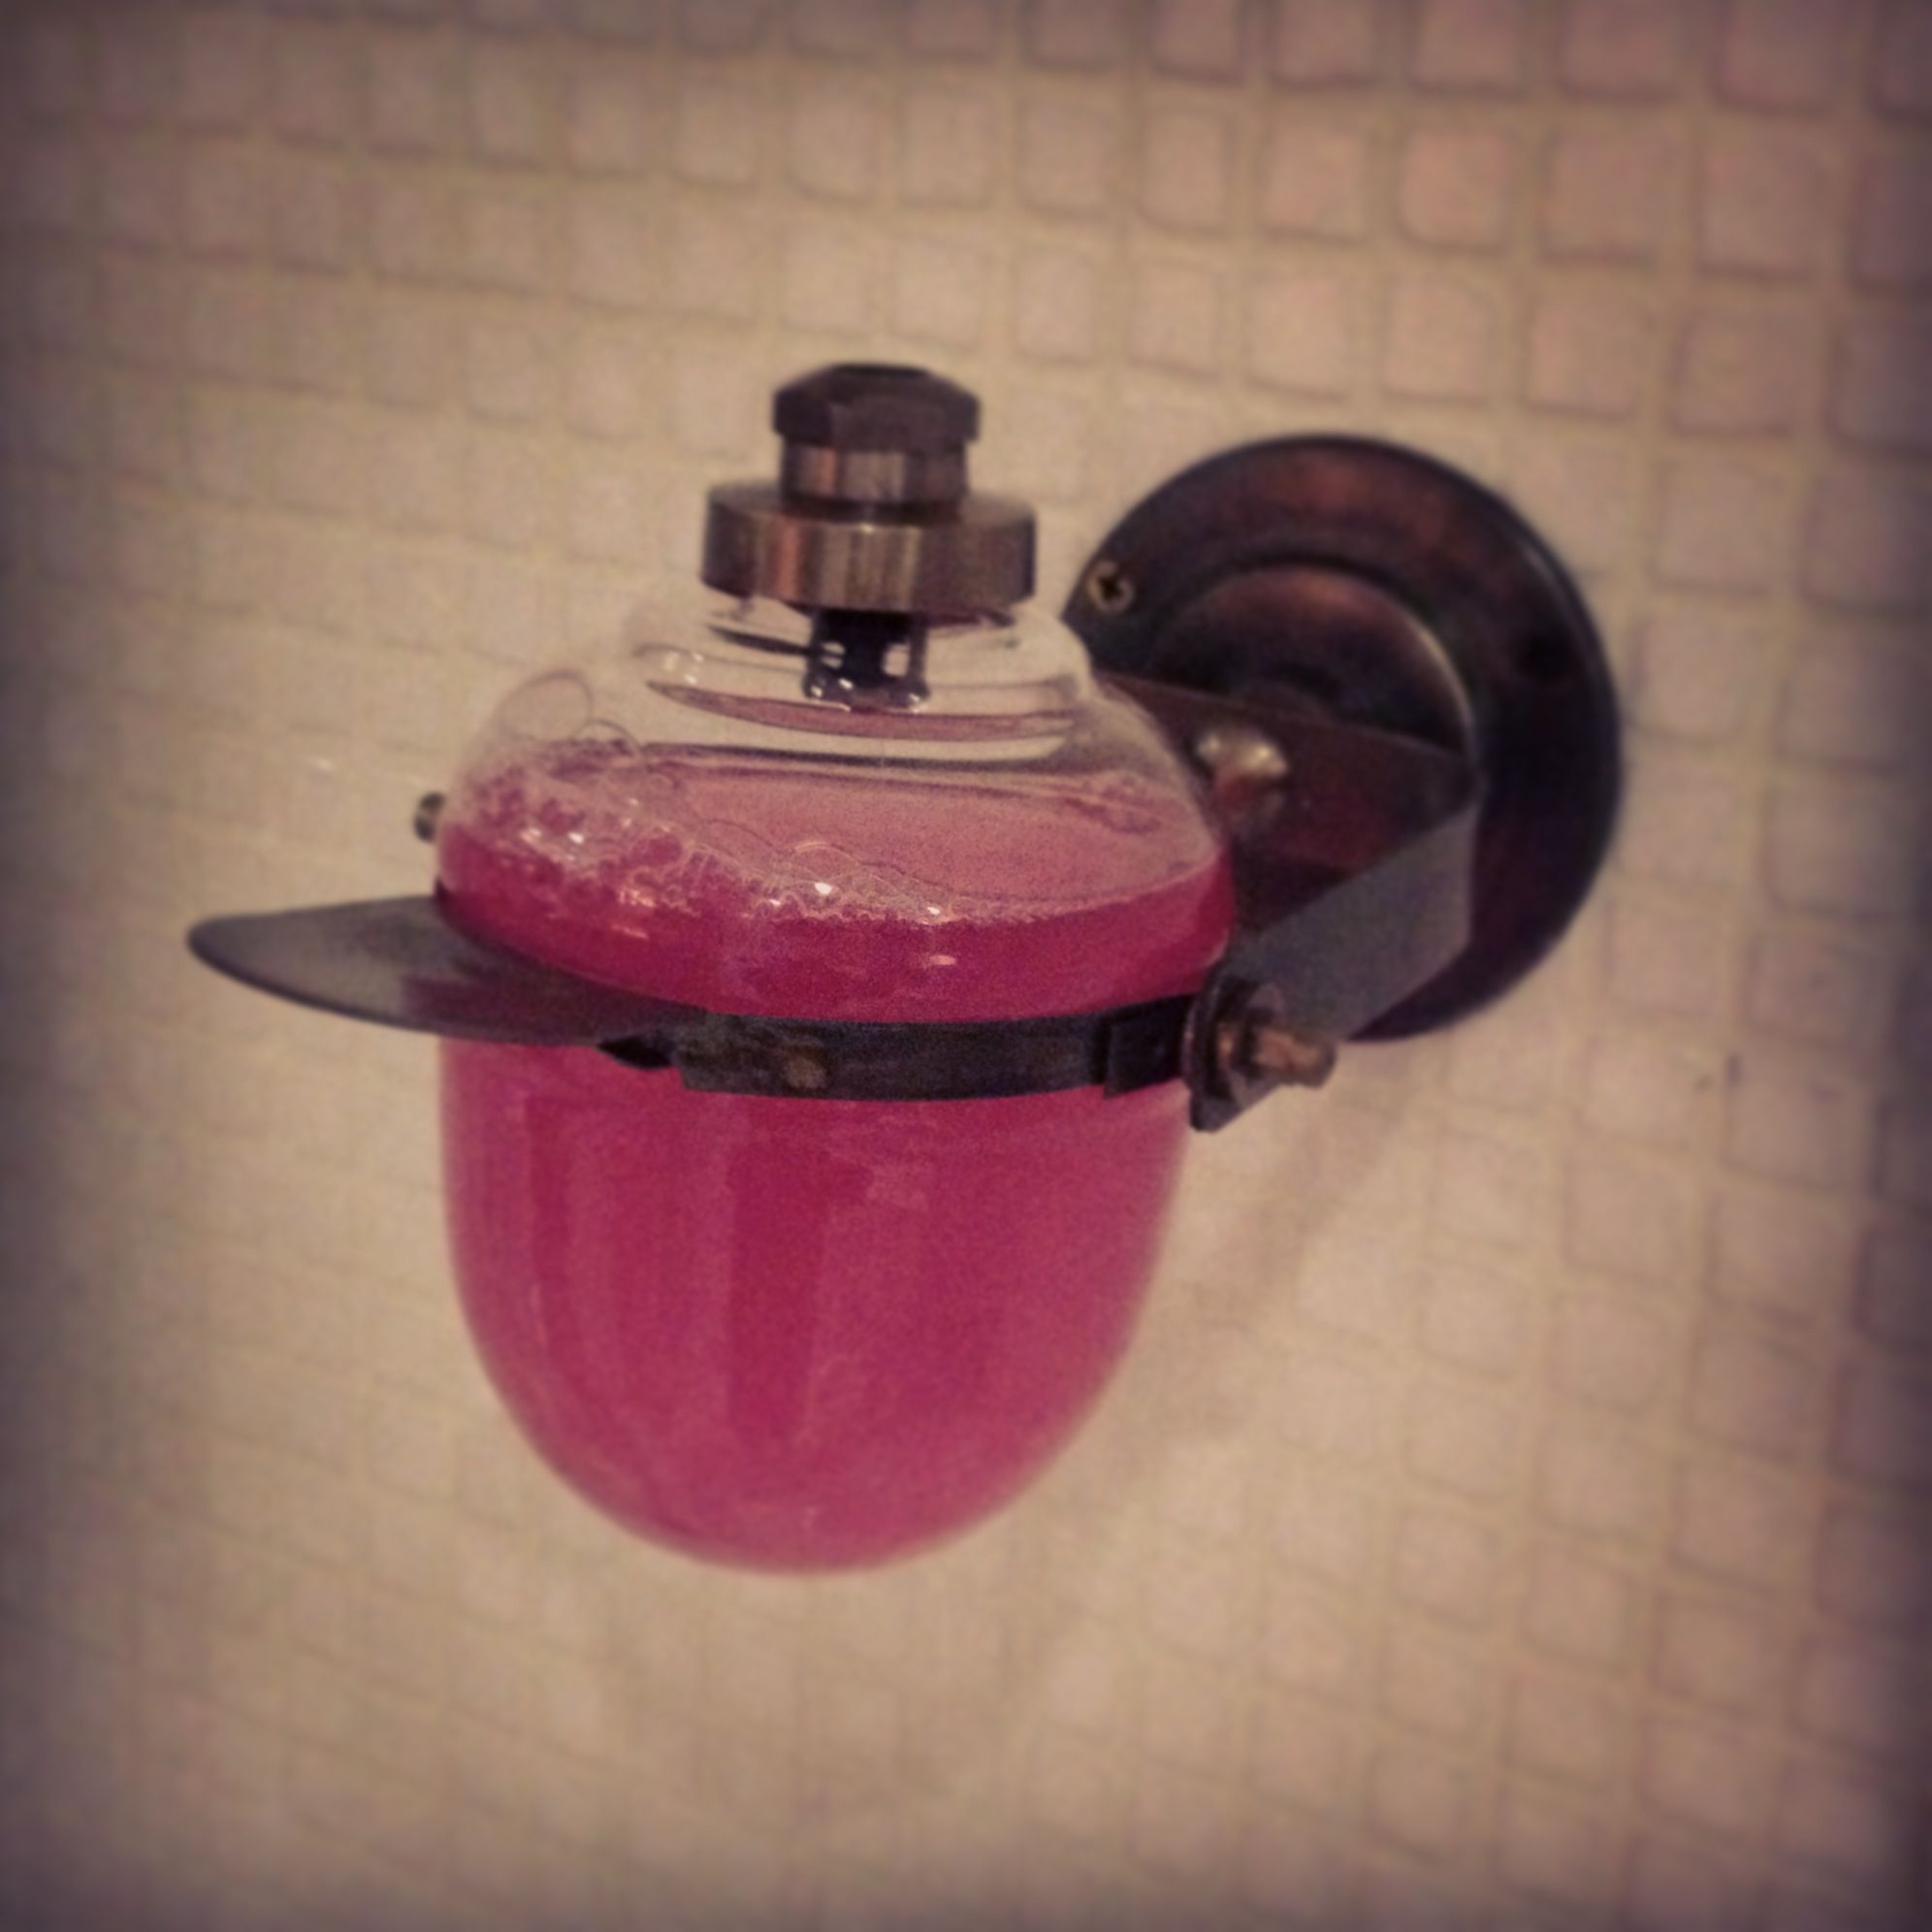 Vintage Bathroom Soap Dispenser Vintage Soap Dispenser Soap Pinterest